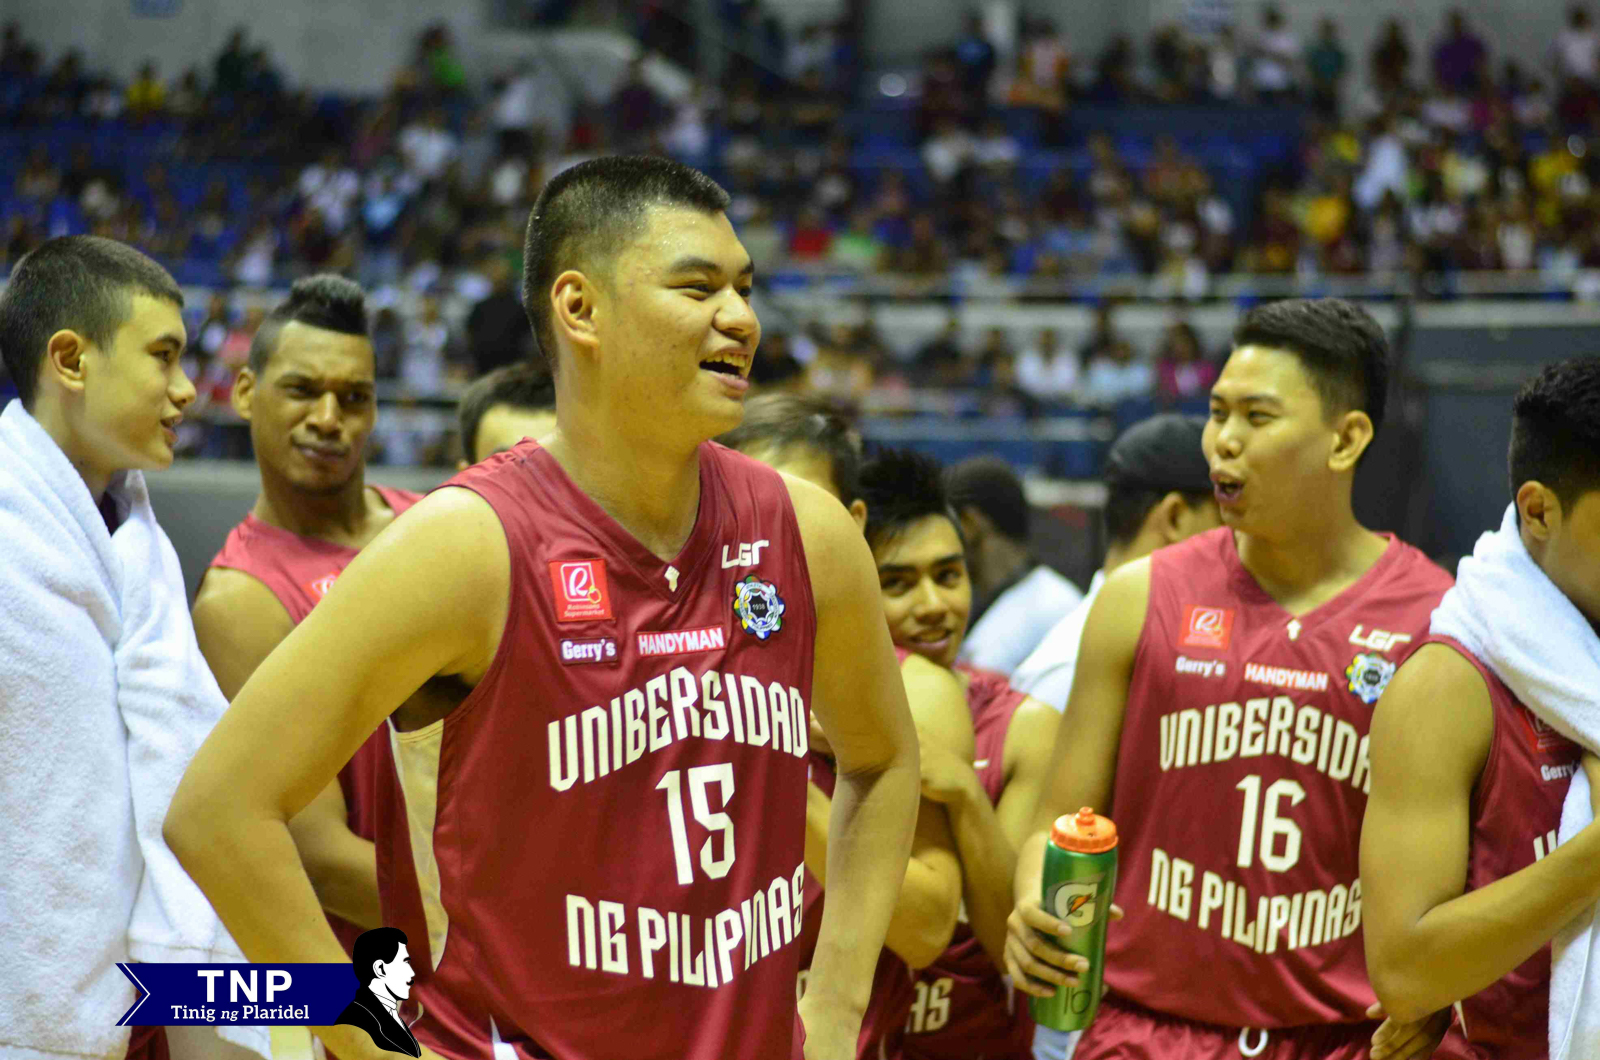 Vito sinks three treys to lead UP to opening win against UE